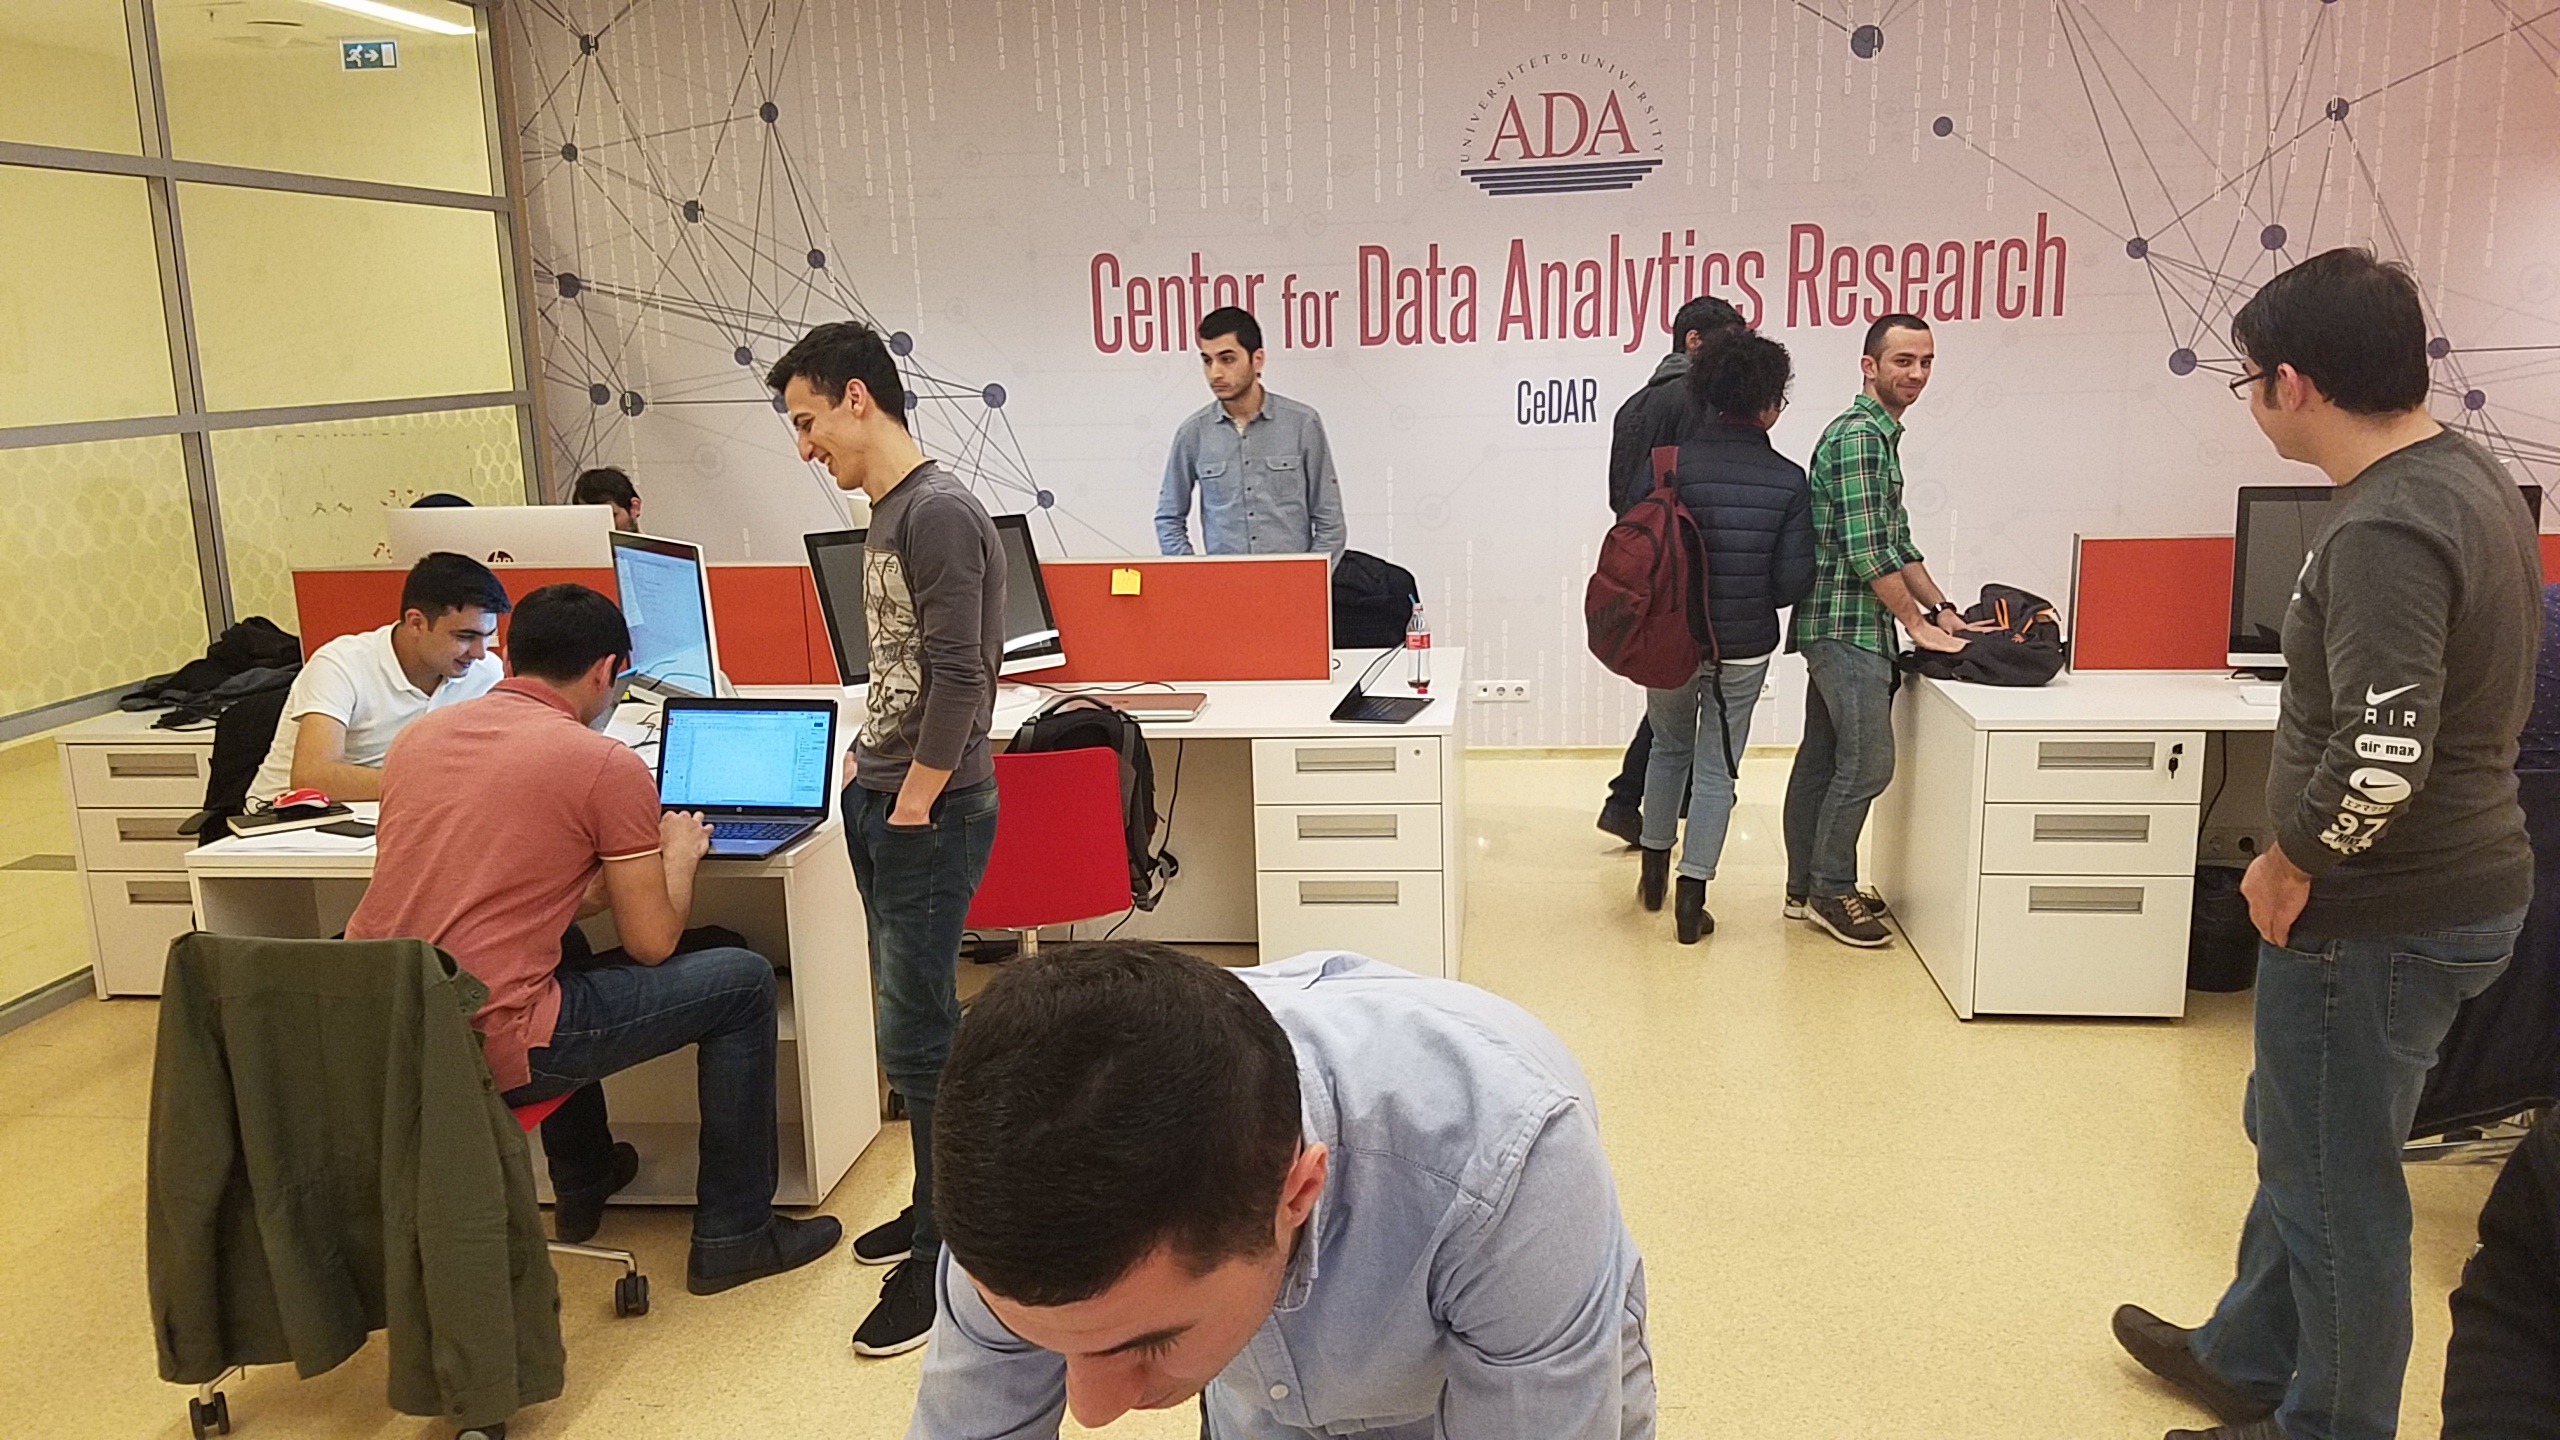 Center for Data Analytics and Research